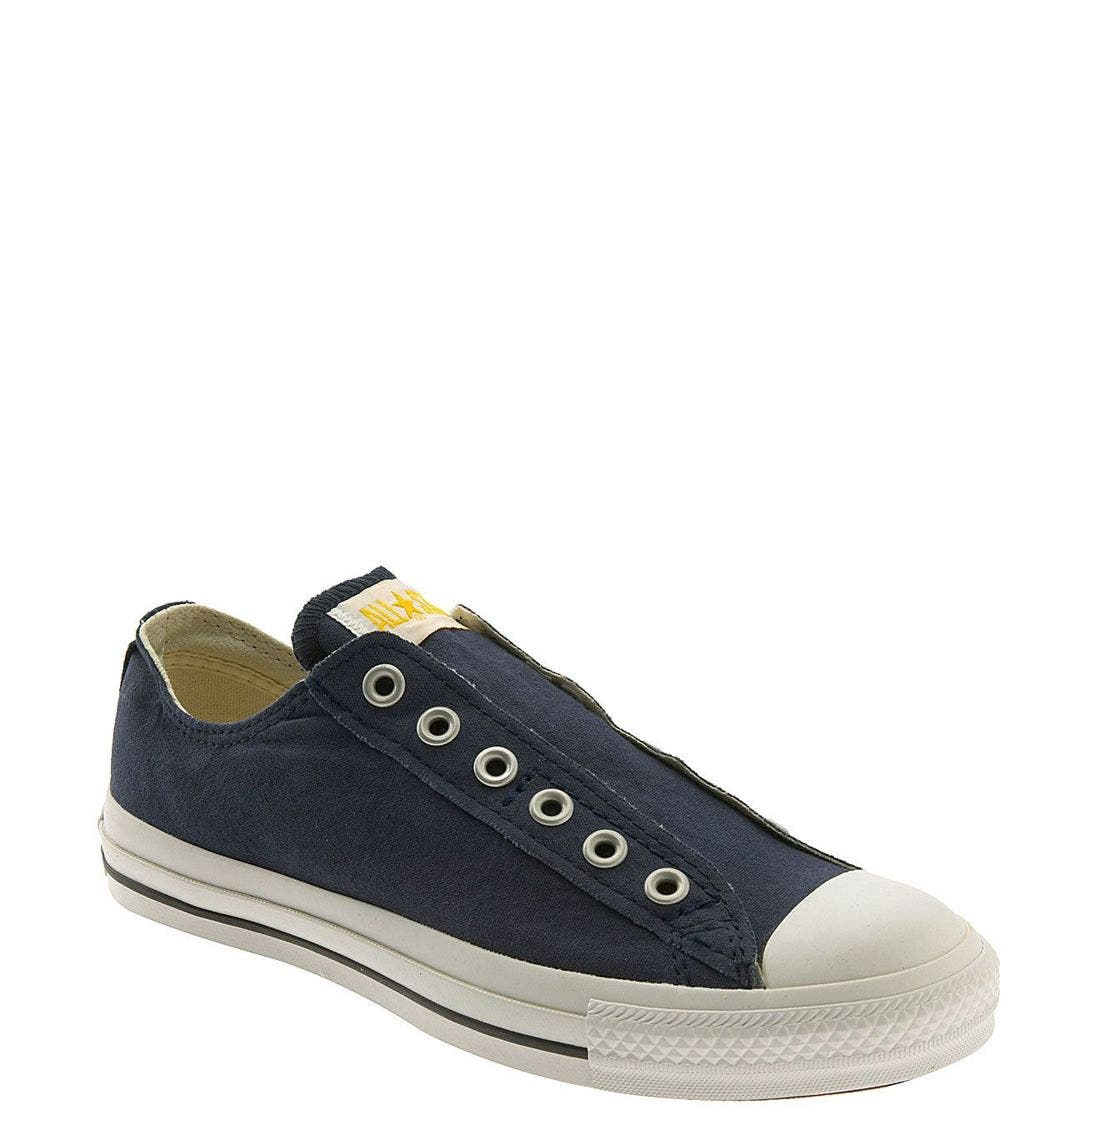 Main Image - Converse Chuck Taylor® Low Slip-On Sneaker (Women)